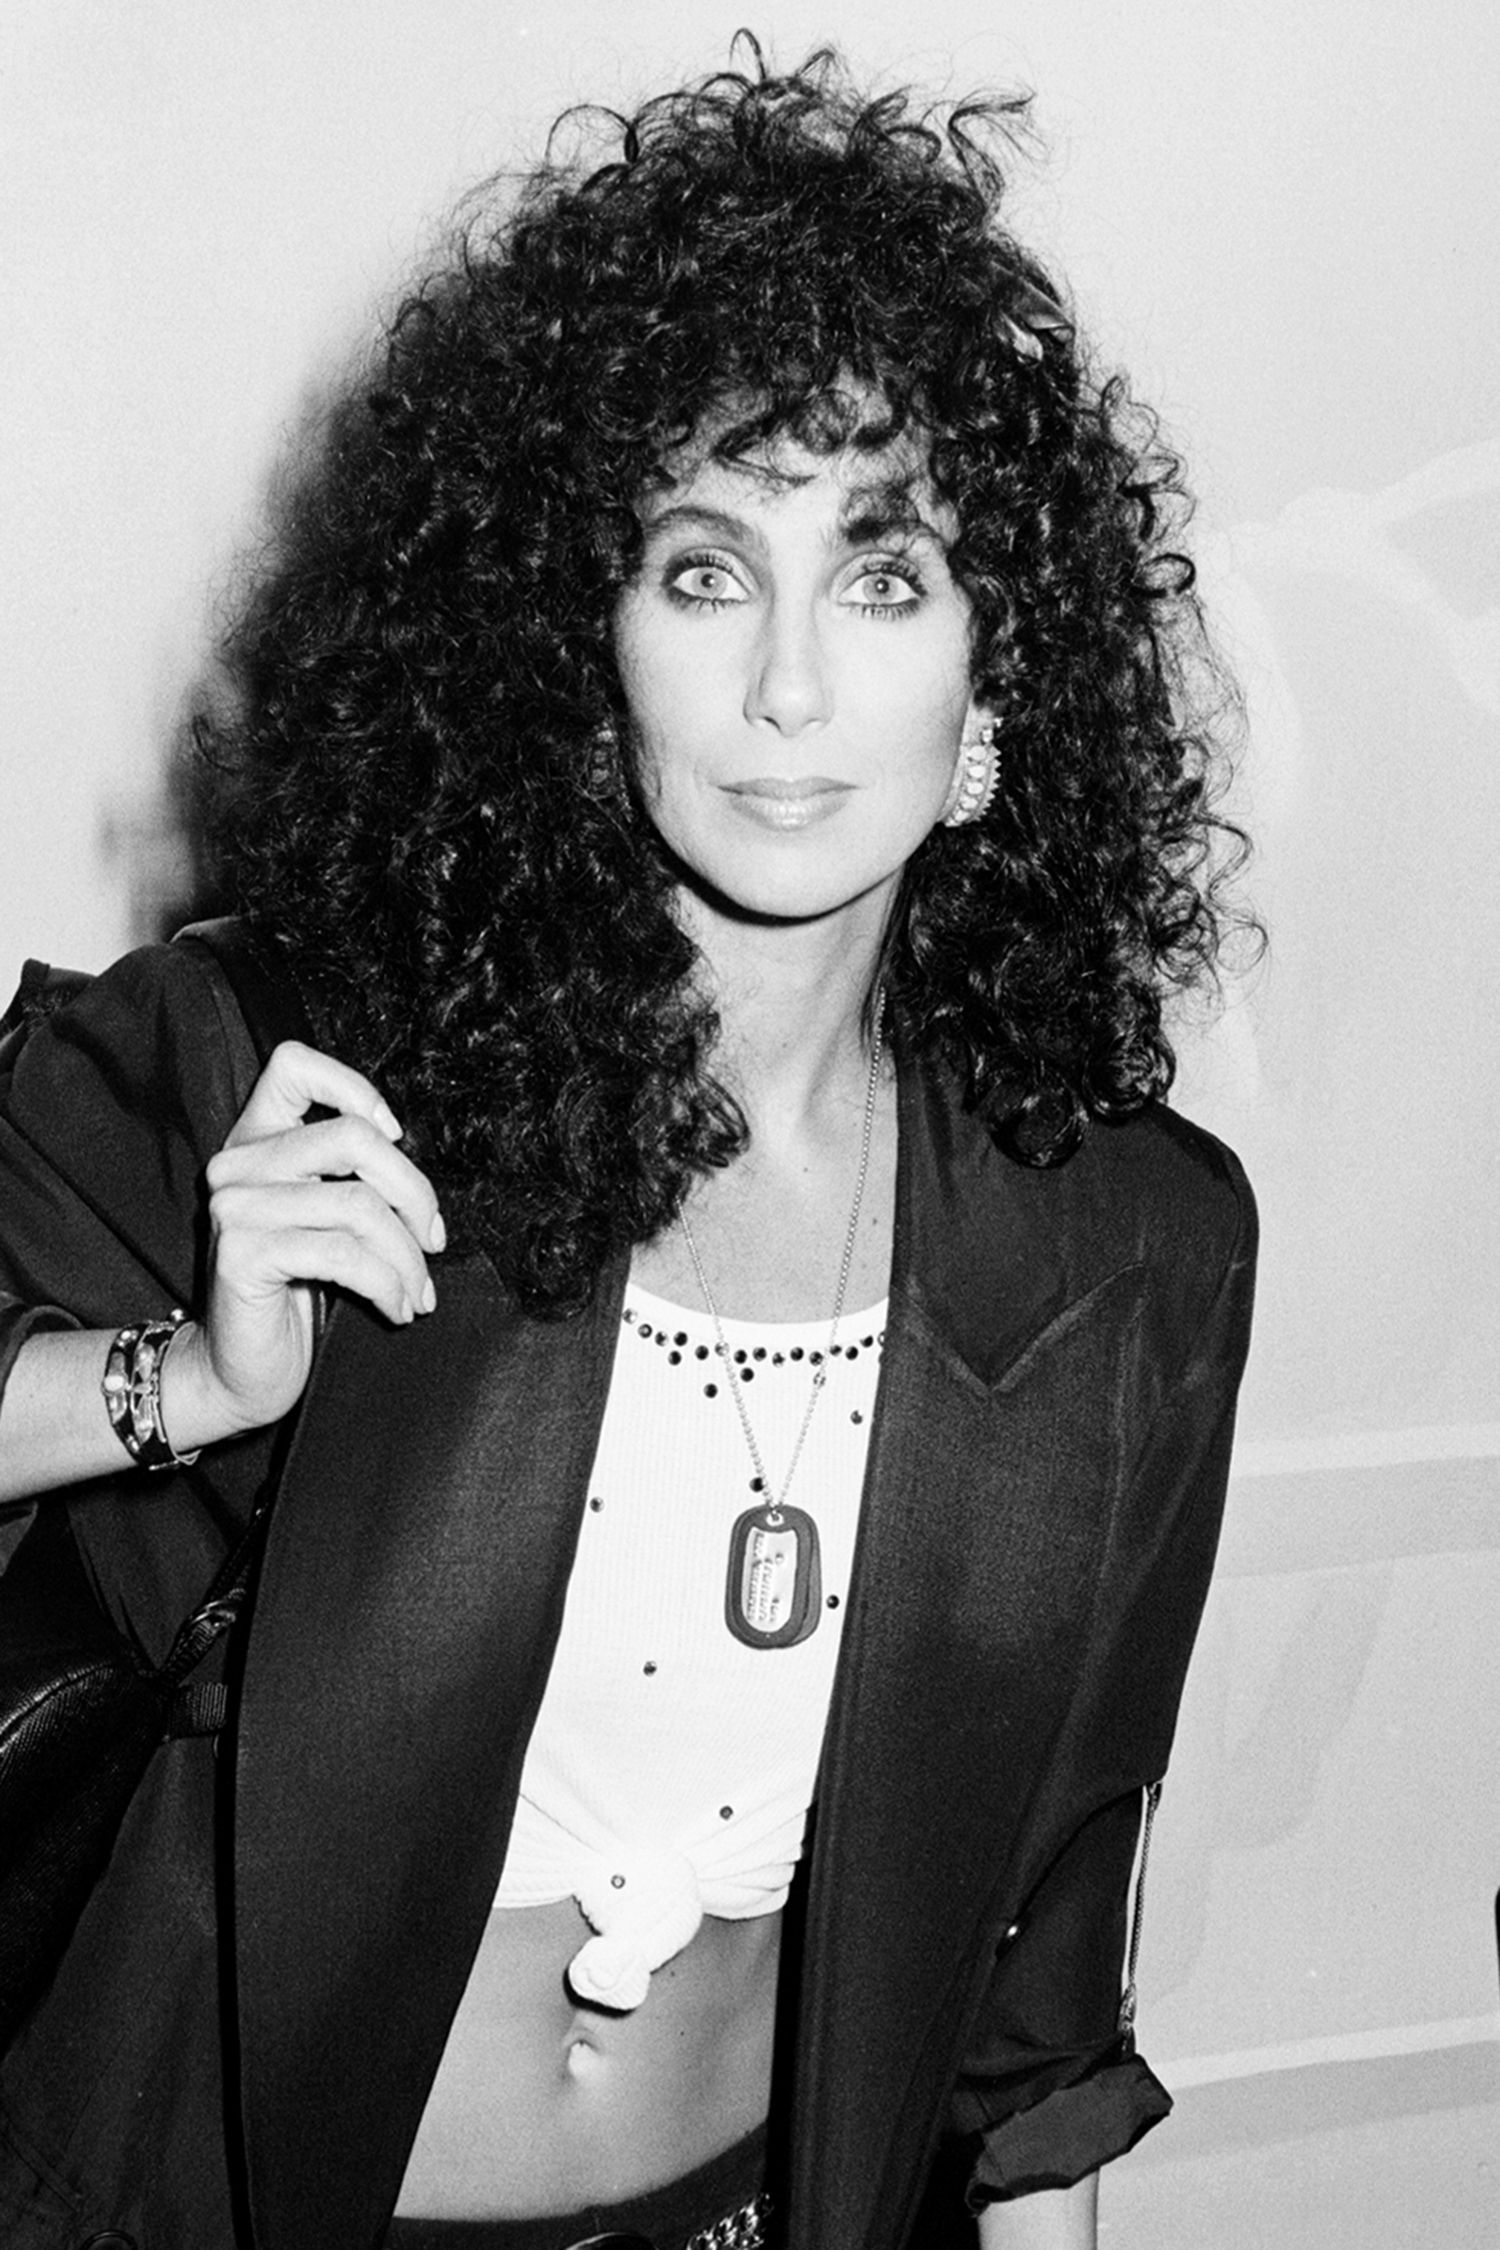 UNITED STATES - MAY 01:  Cher Bono  (Photo by The LIFE Picture Collection/Getty Images)